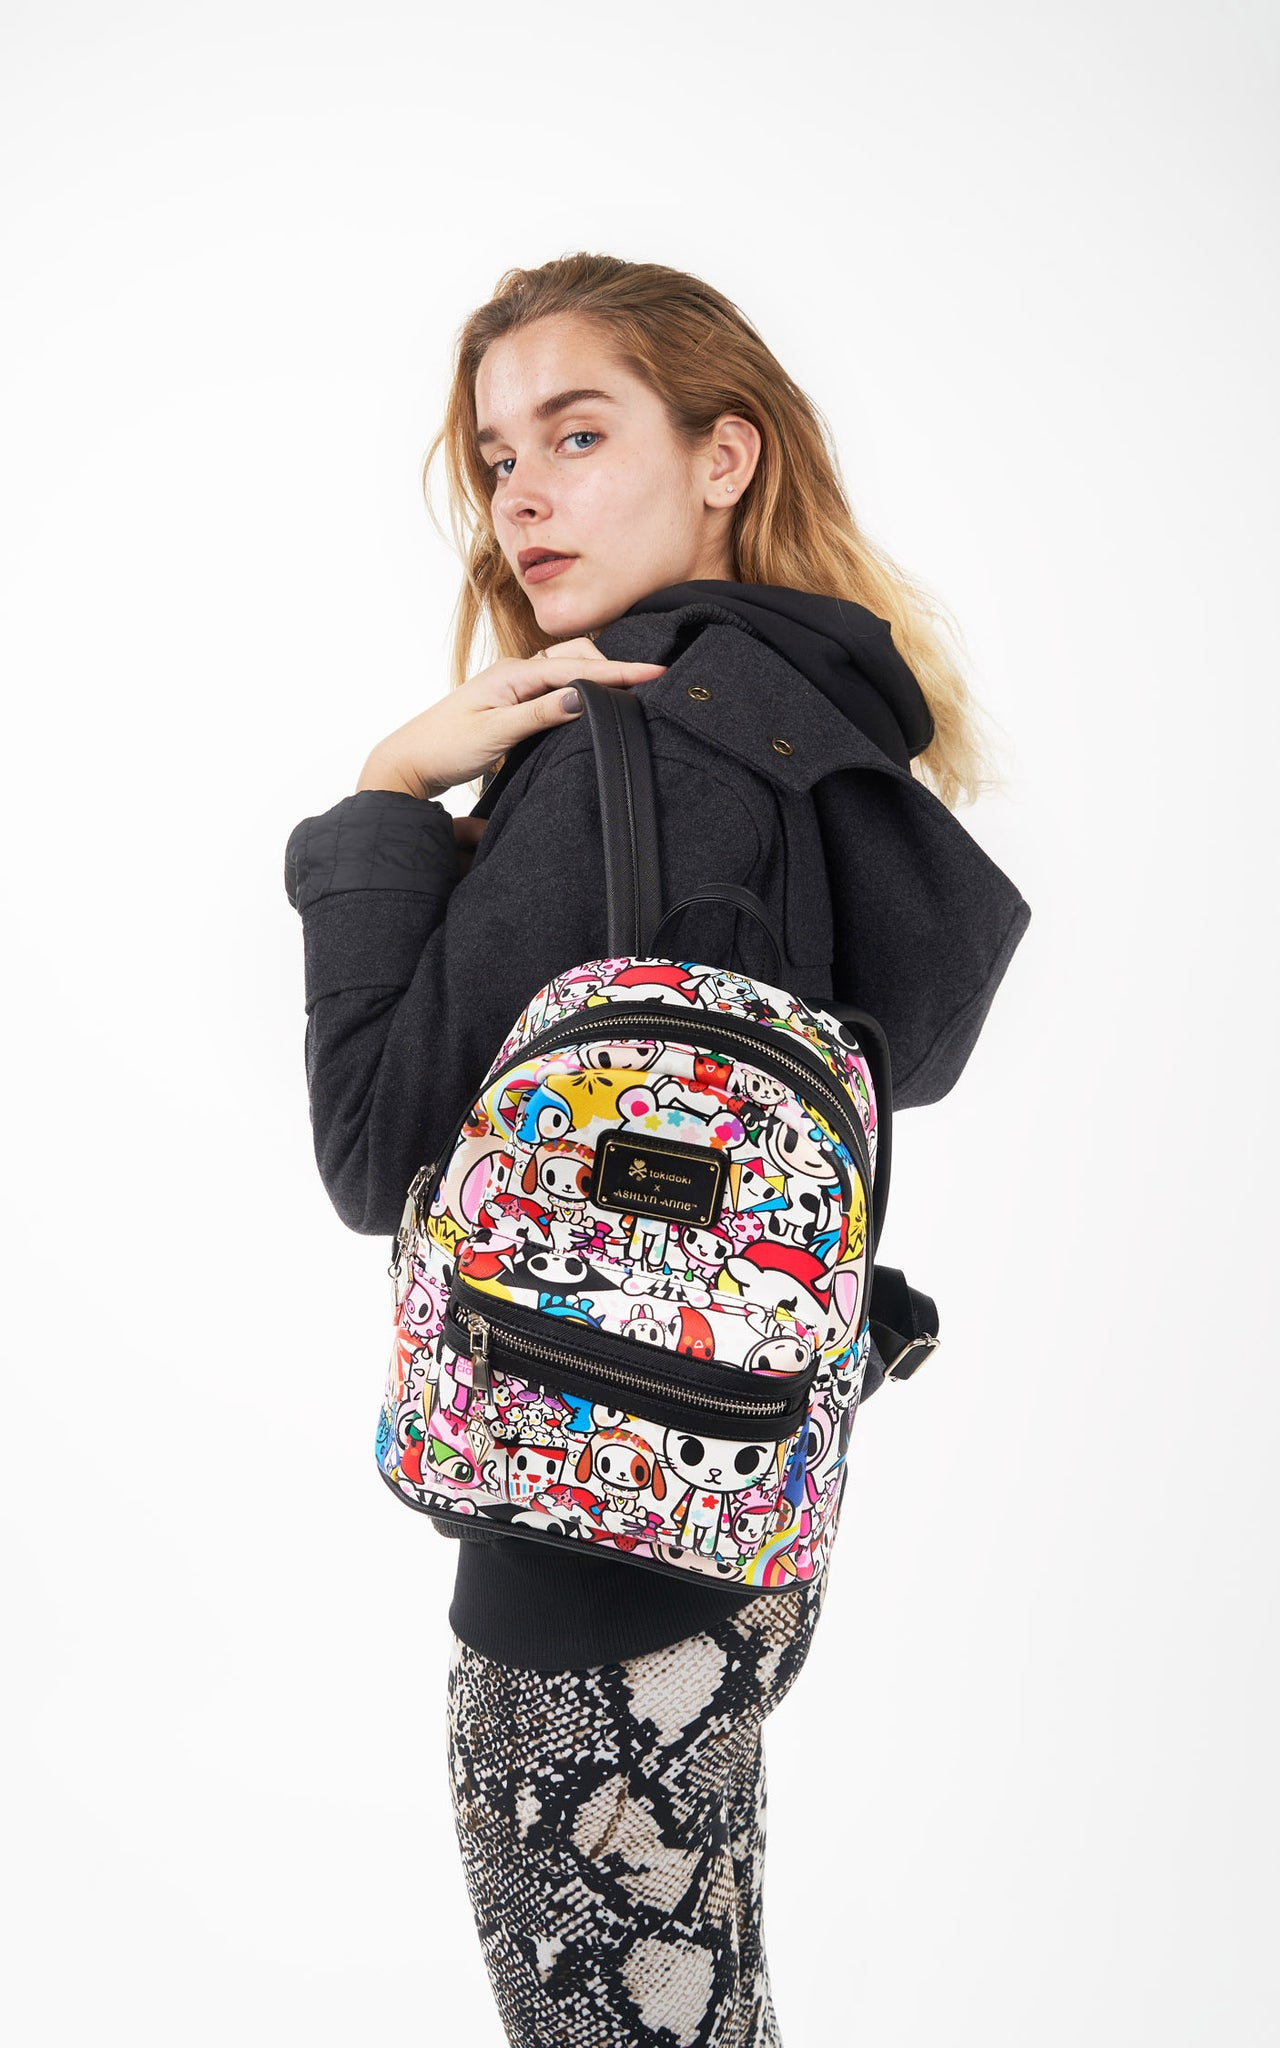 TDxAN Pop Garden Backpack - A.Anne, Tokidoki, Ashlyn Anne, Fashion, Handbags, School, Bag, Accessories